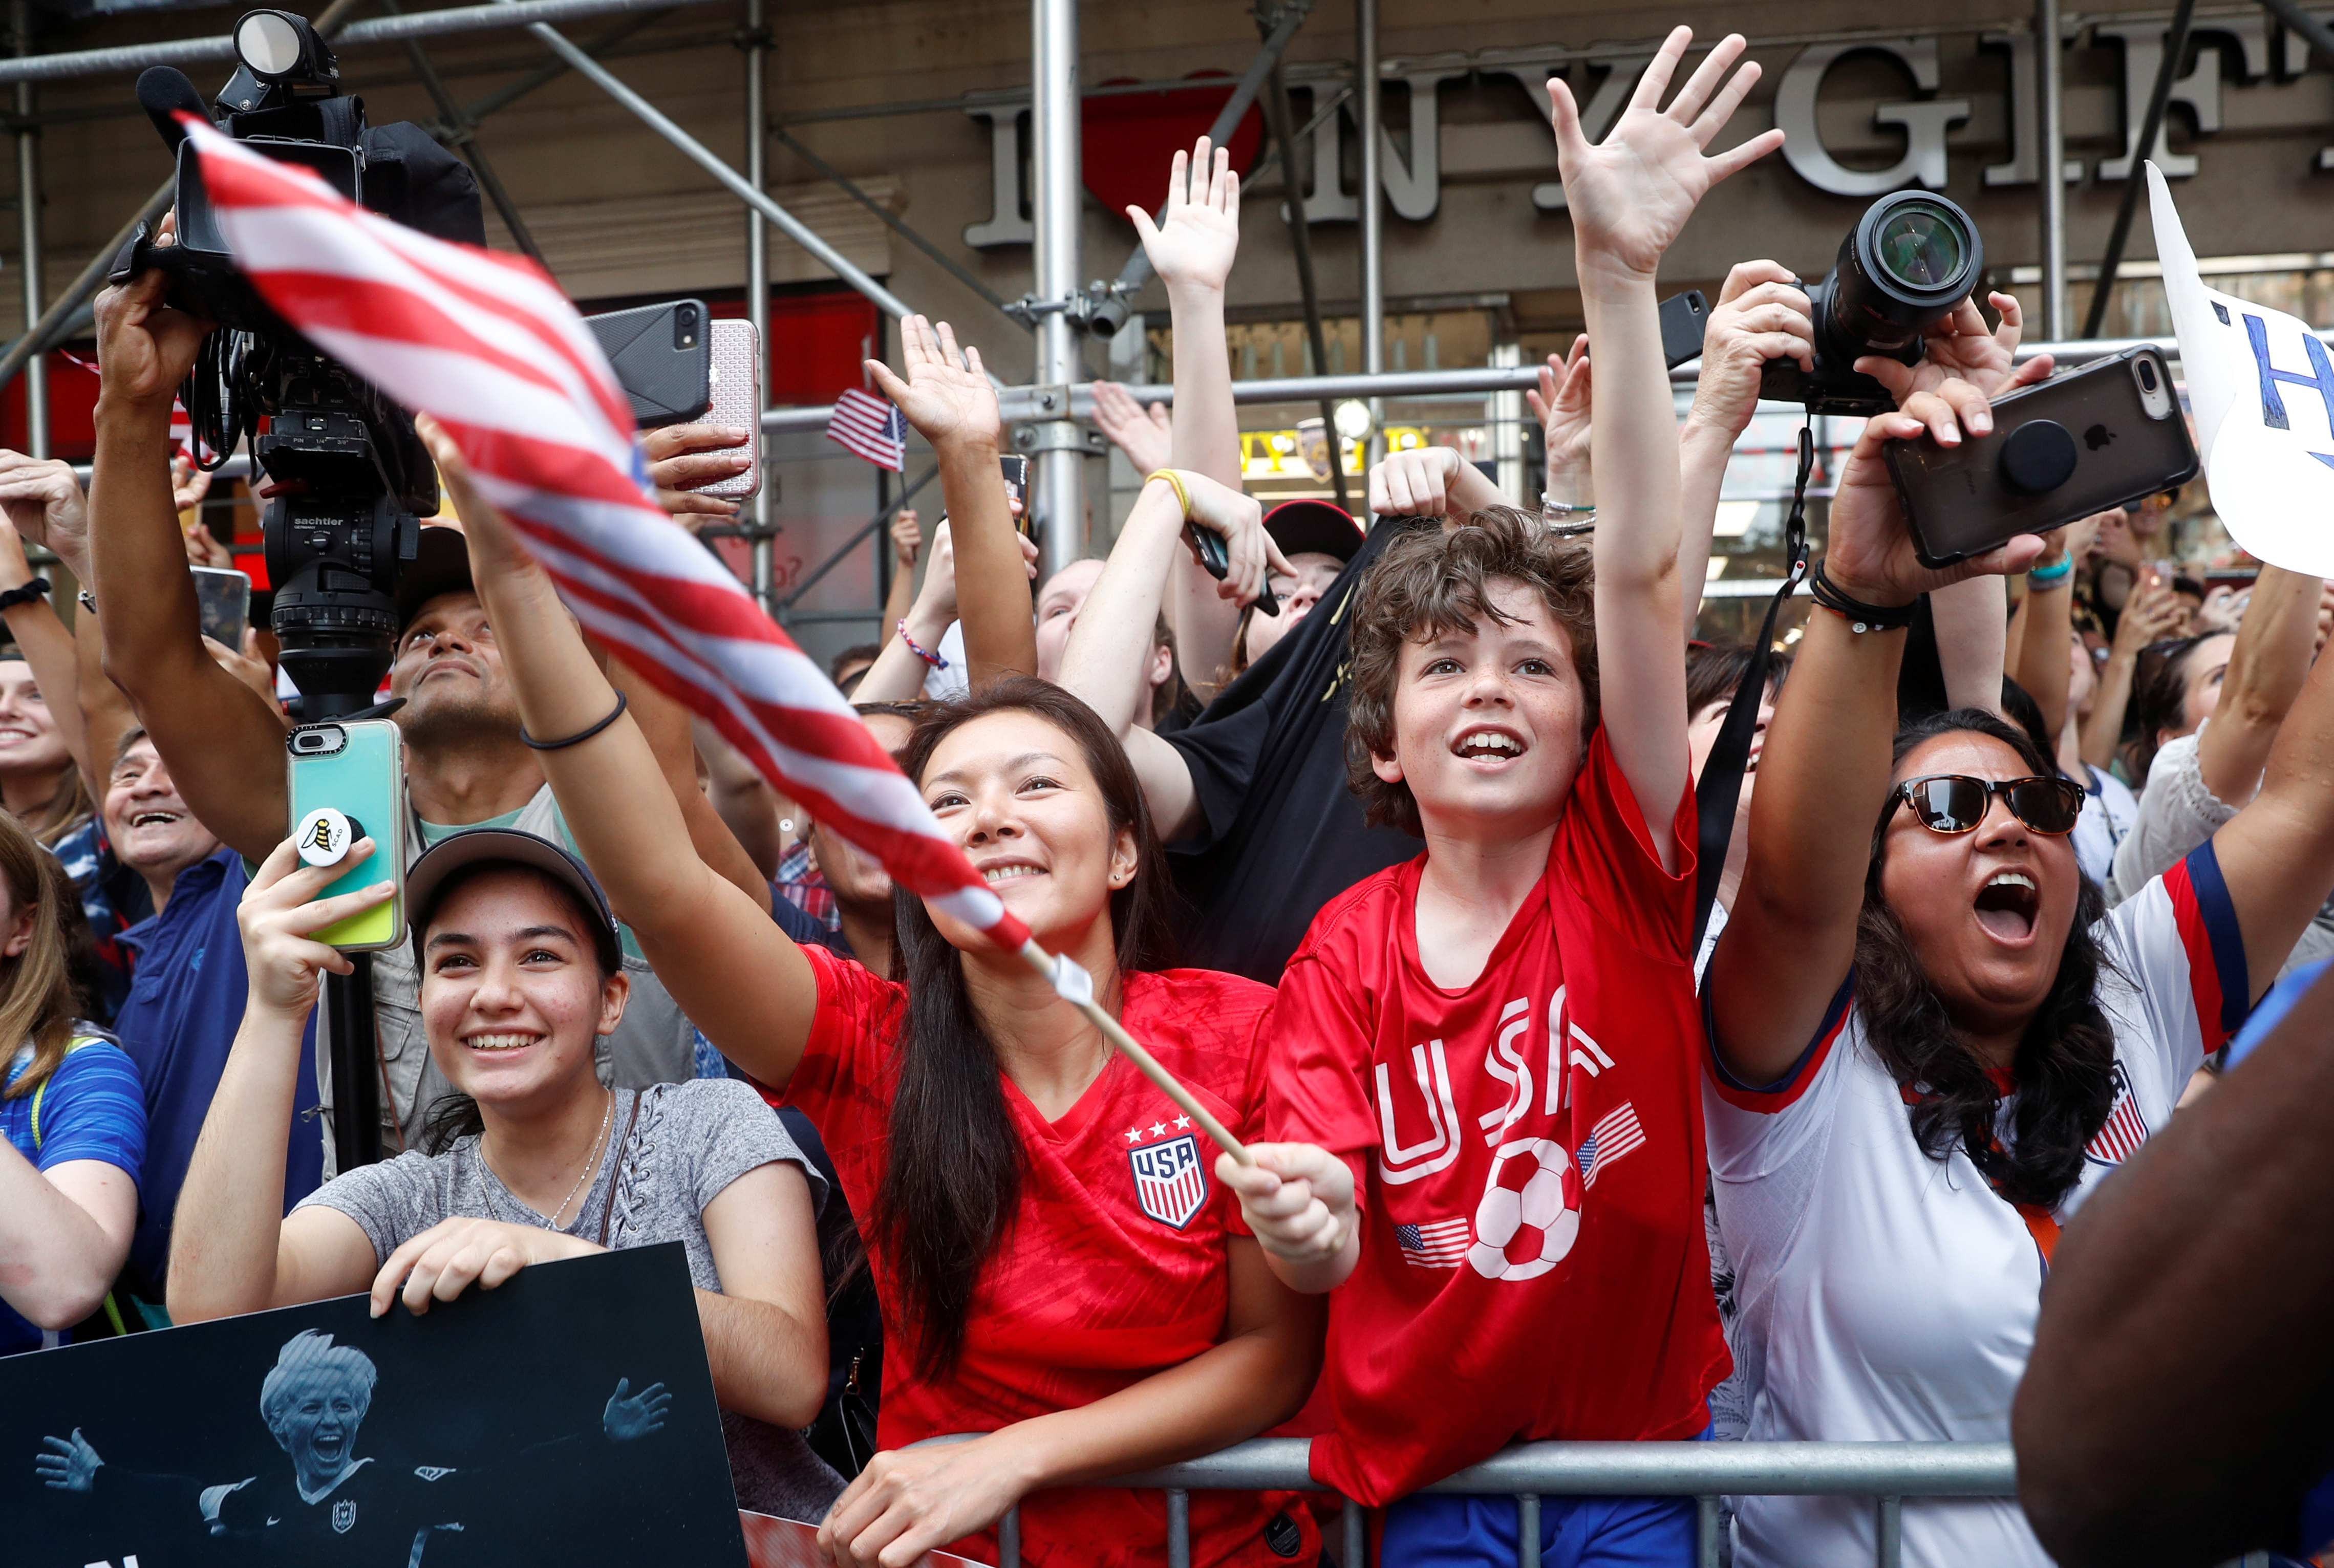 Women's World Cup Champions Parade - New York, United States - July 10, 2019 Fans during the parade.